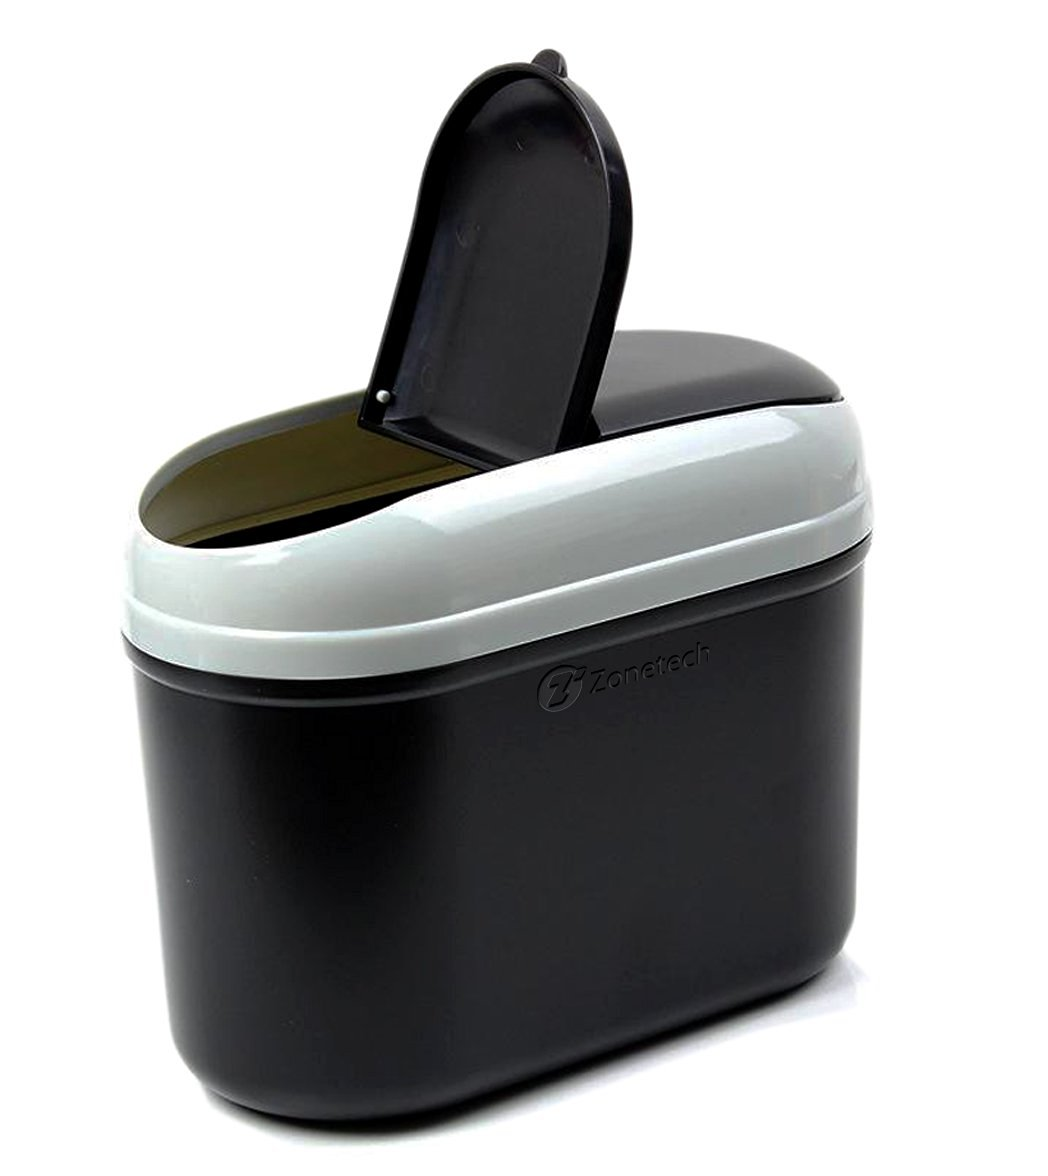 Zone Tech Traveling Car Garbage Can Portable Sturdy Black Vehicle Tras